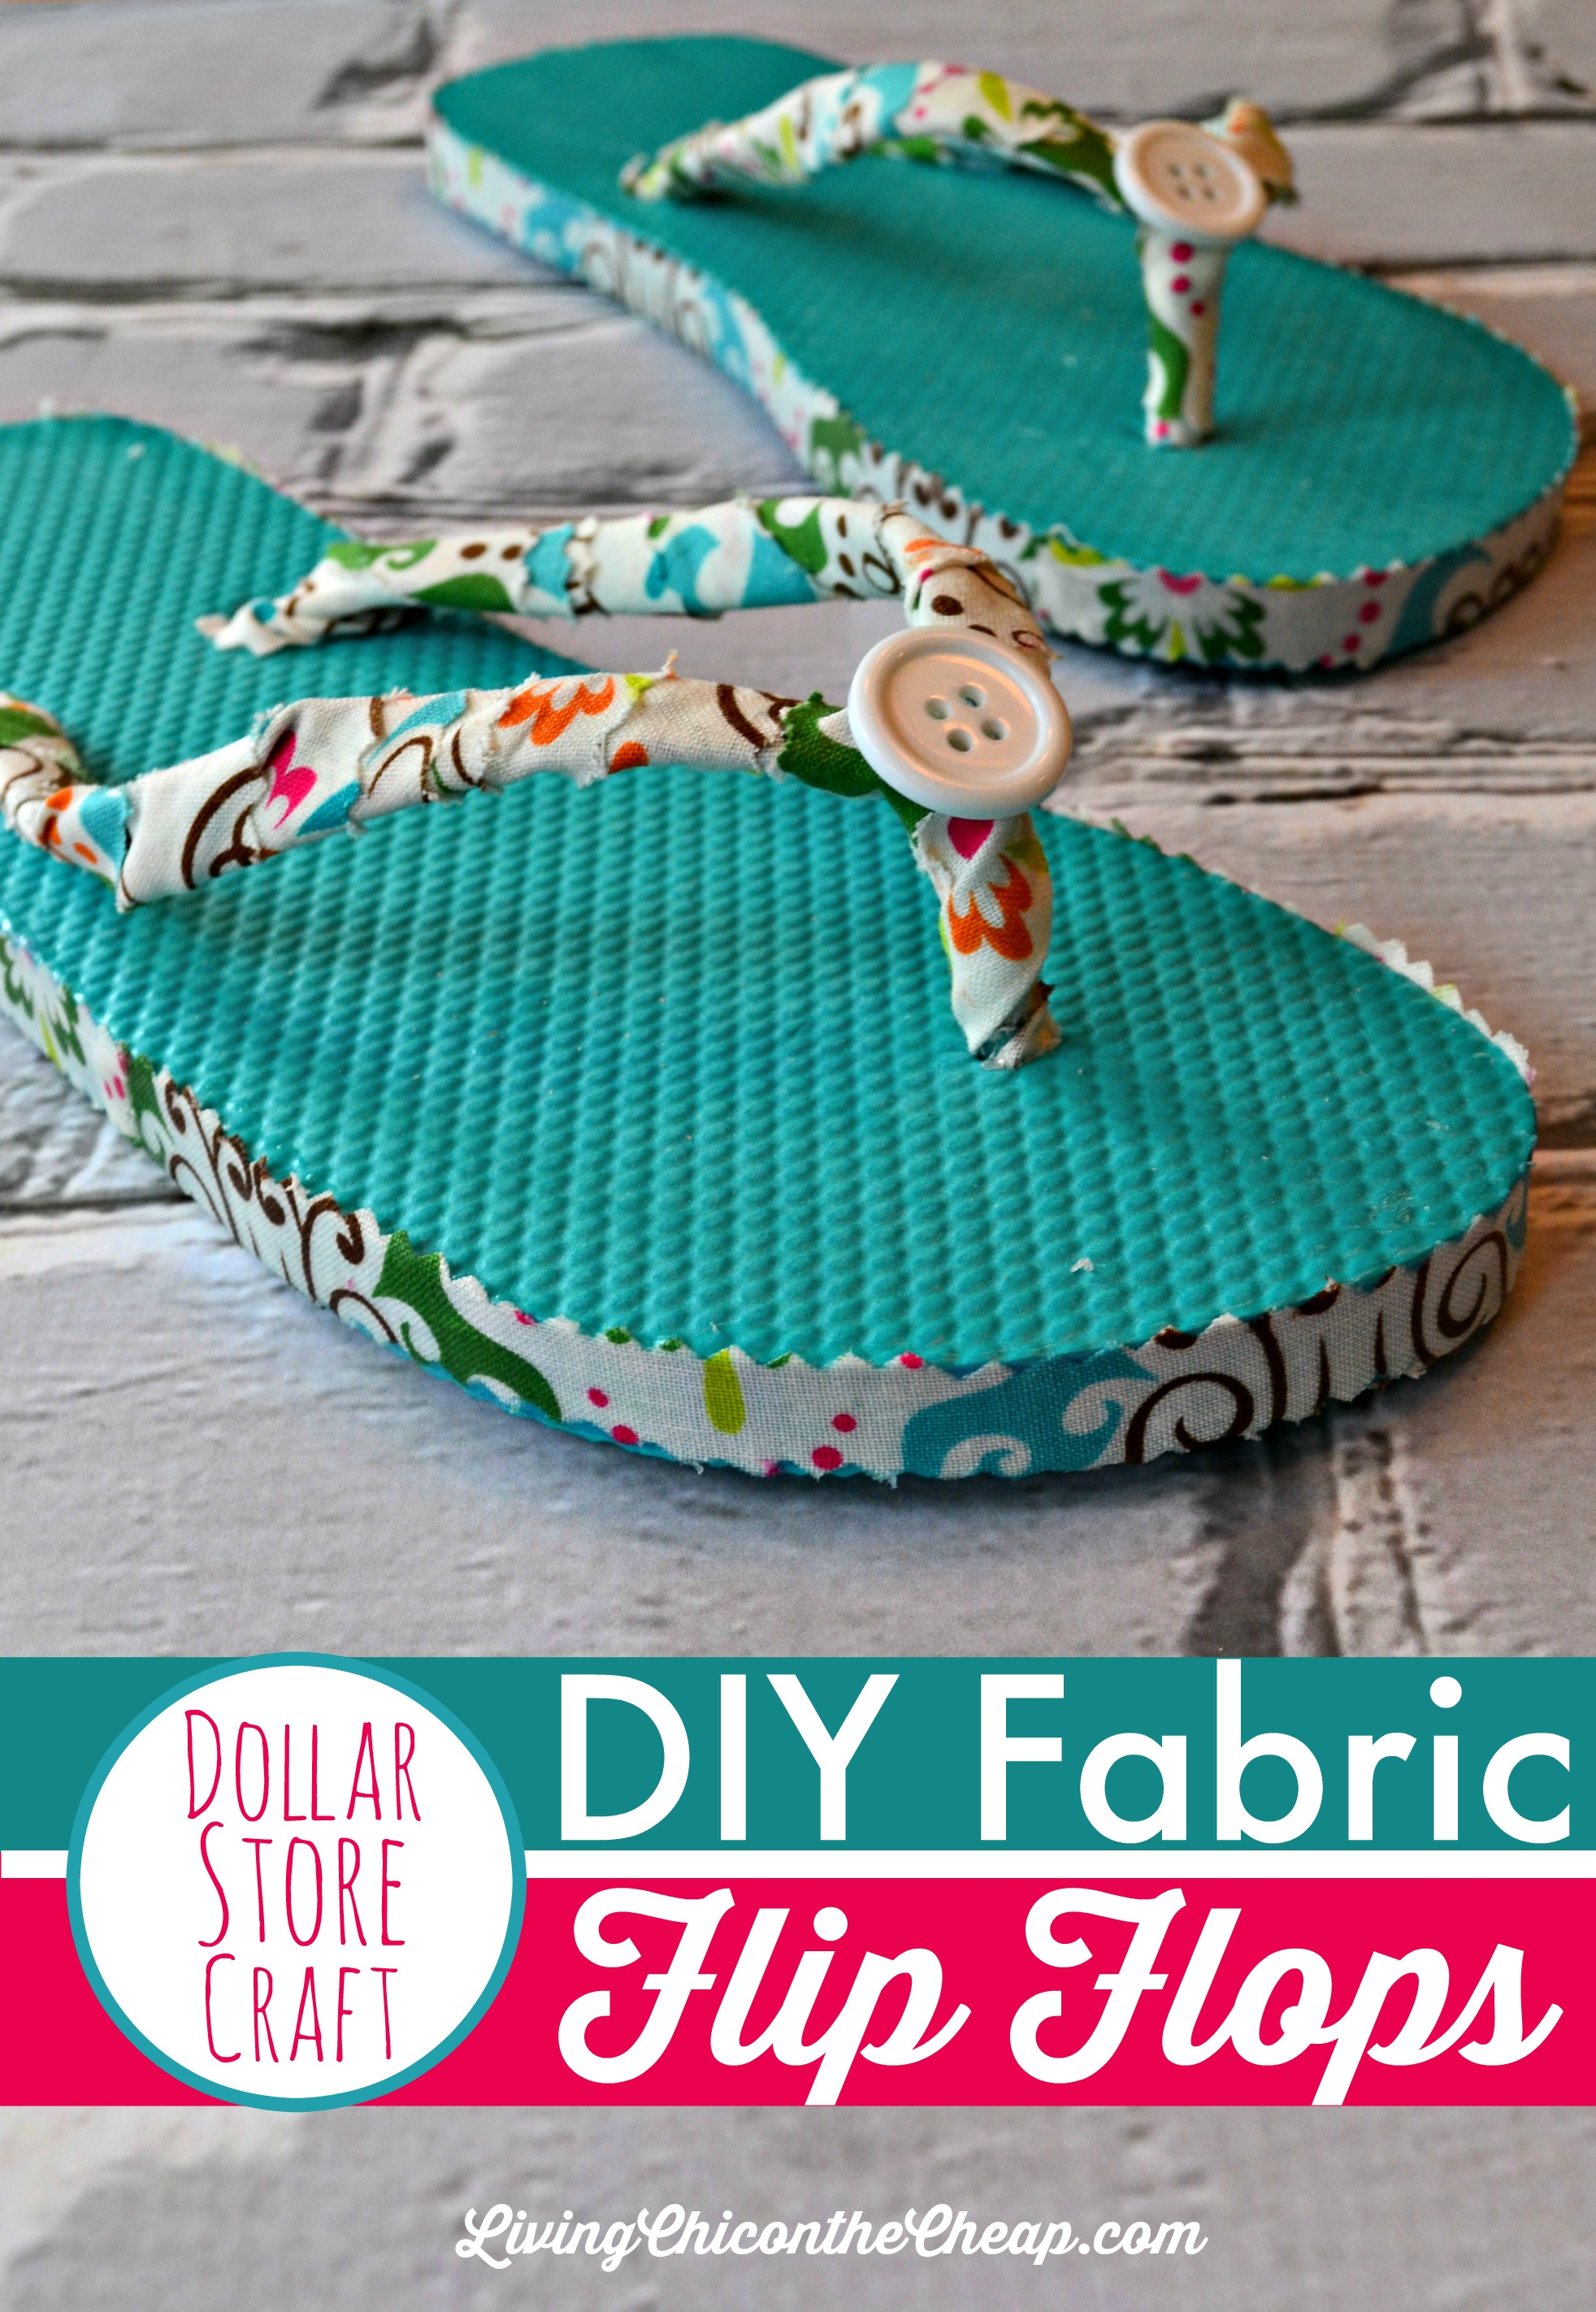 DIY Fabric Flip Flops (No Sewing Required